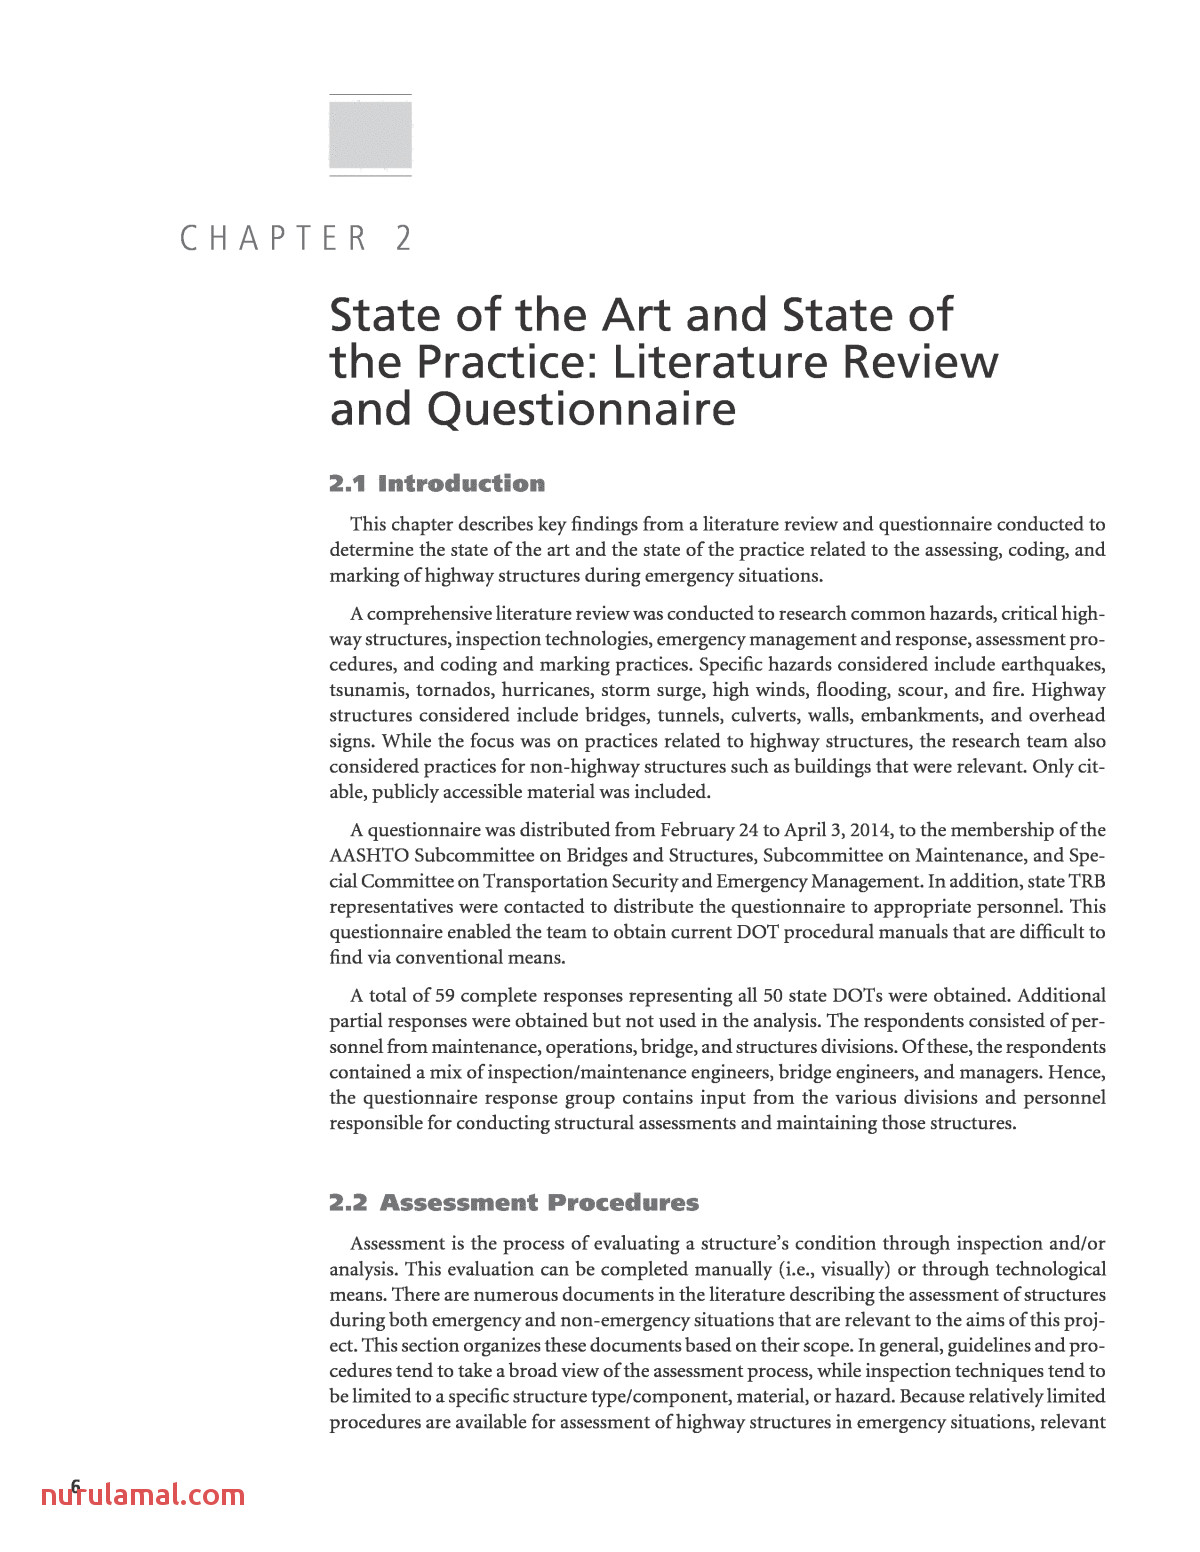 Chapter 2 State Of the Art and State Of the Practice